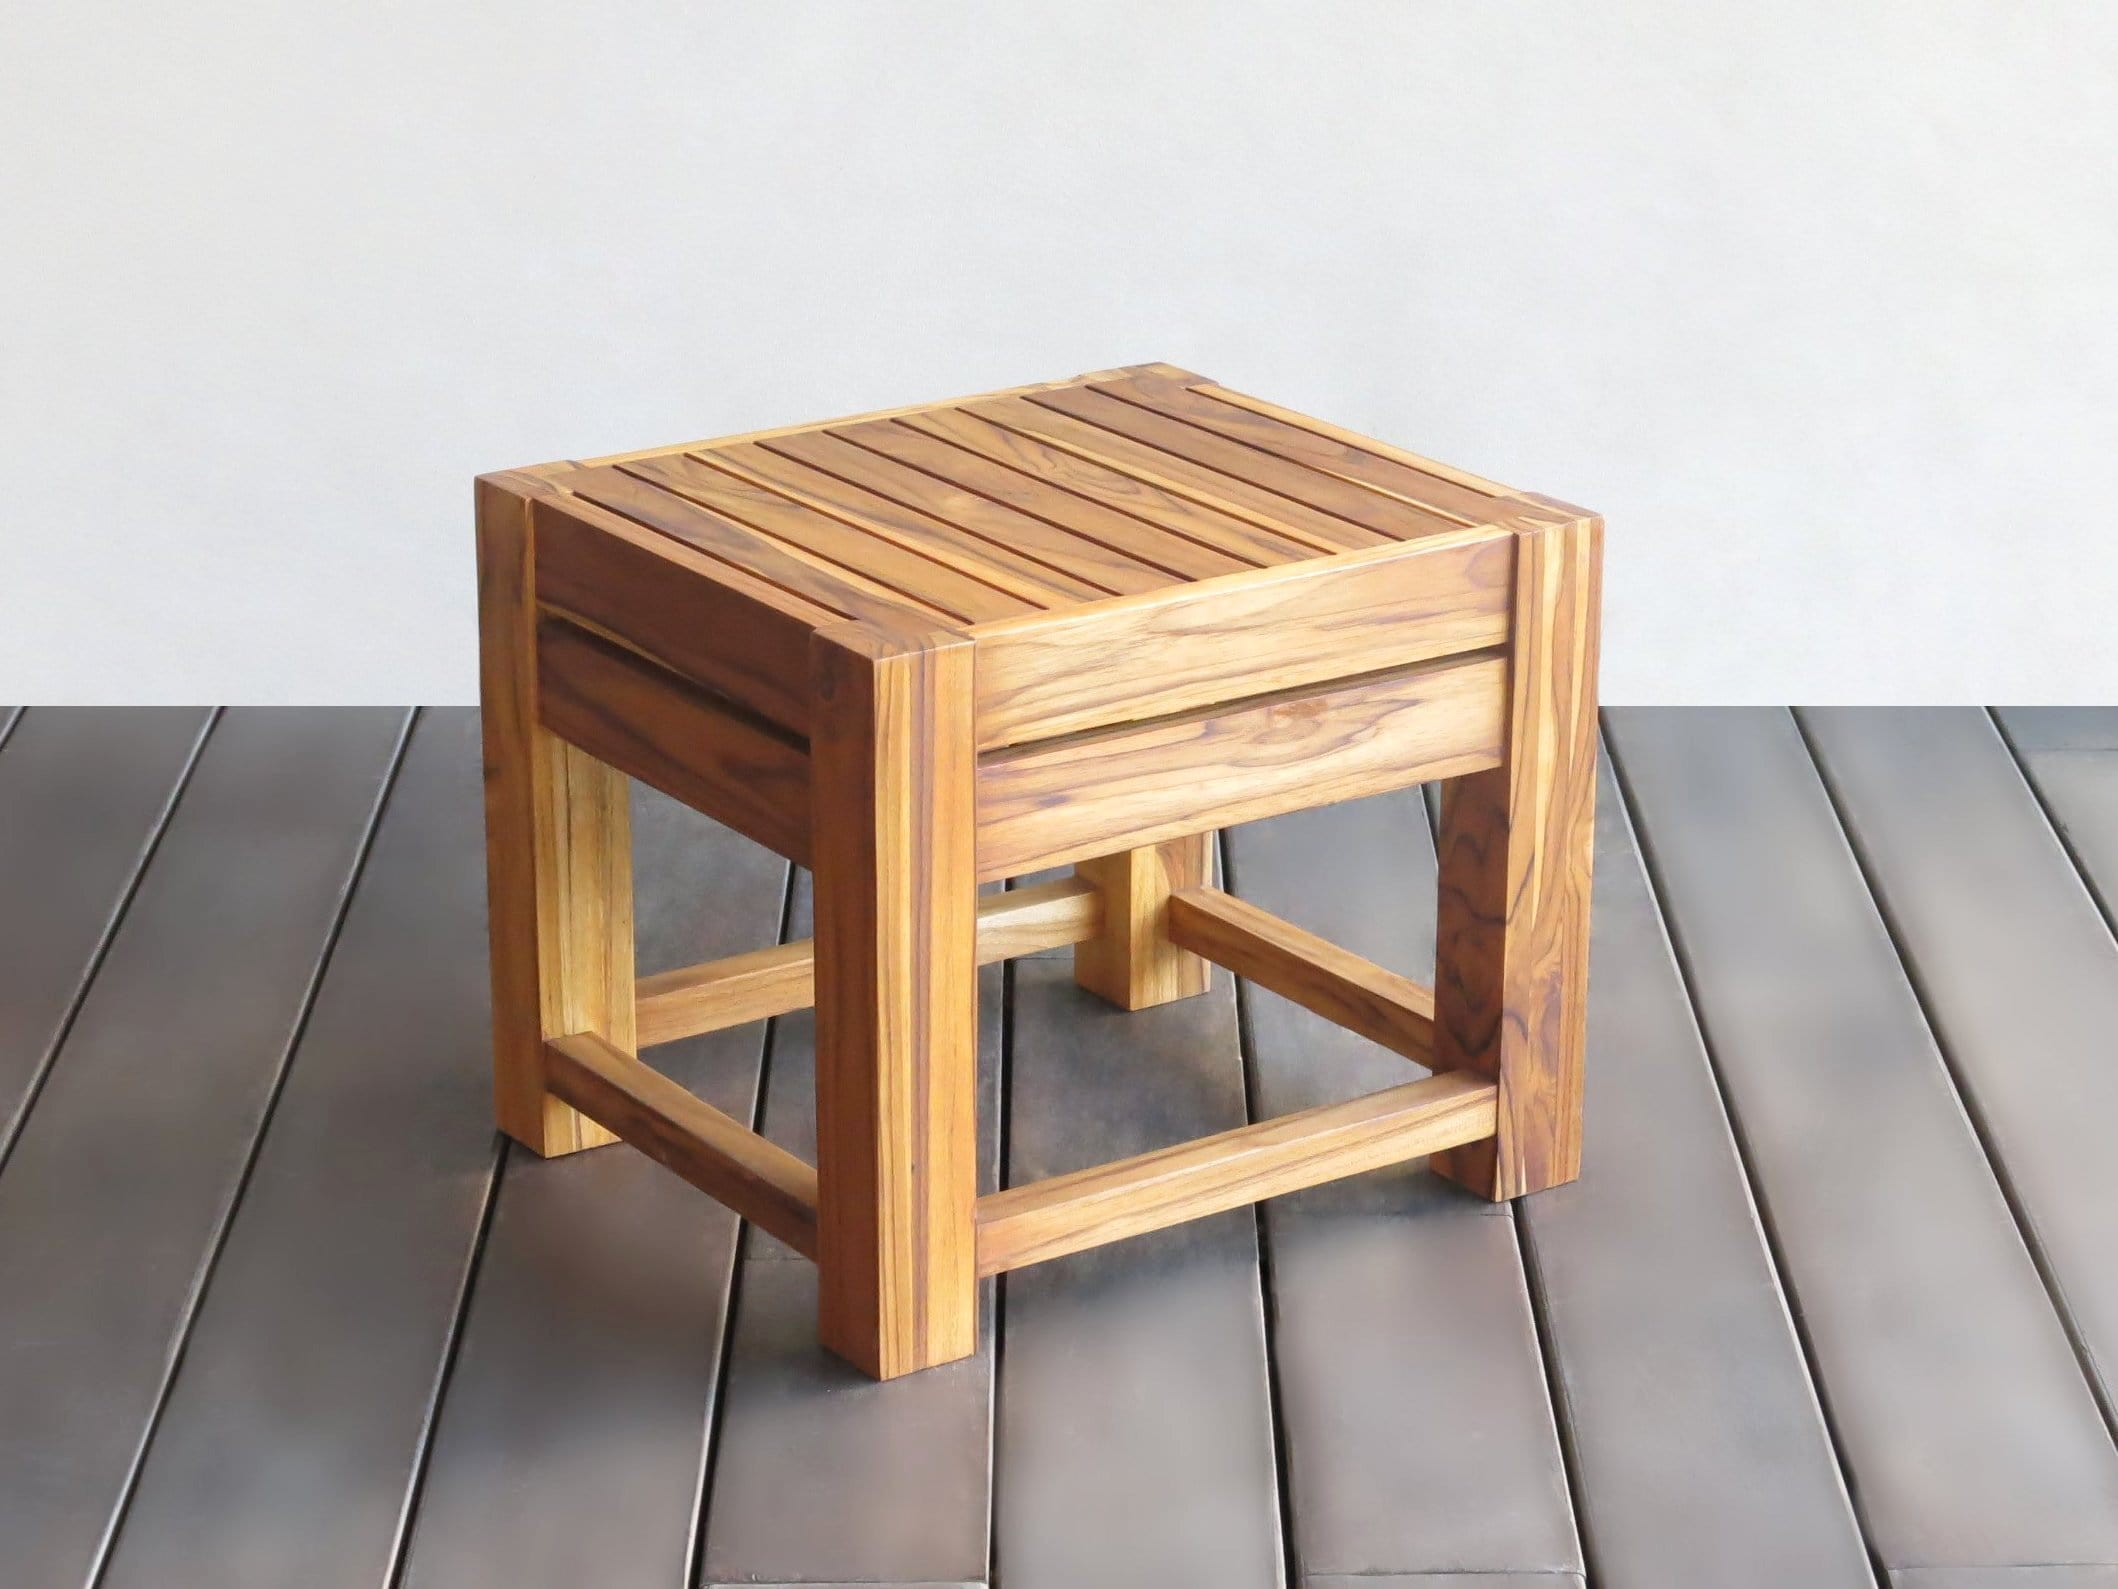 Peachy Slatted Teak Shower Stool Square Style Squirreltailoven Fun Painted Chair Ideas Images Squirreltailovenorg